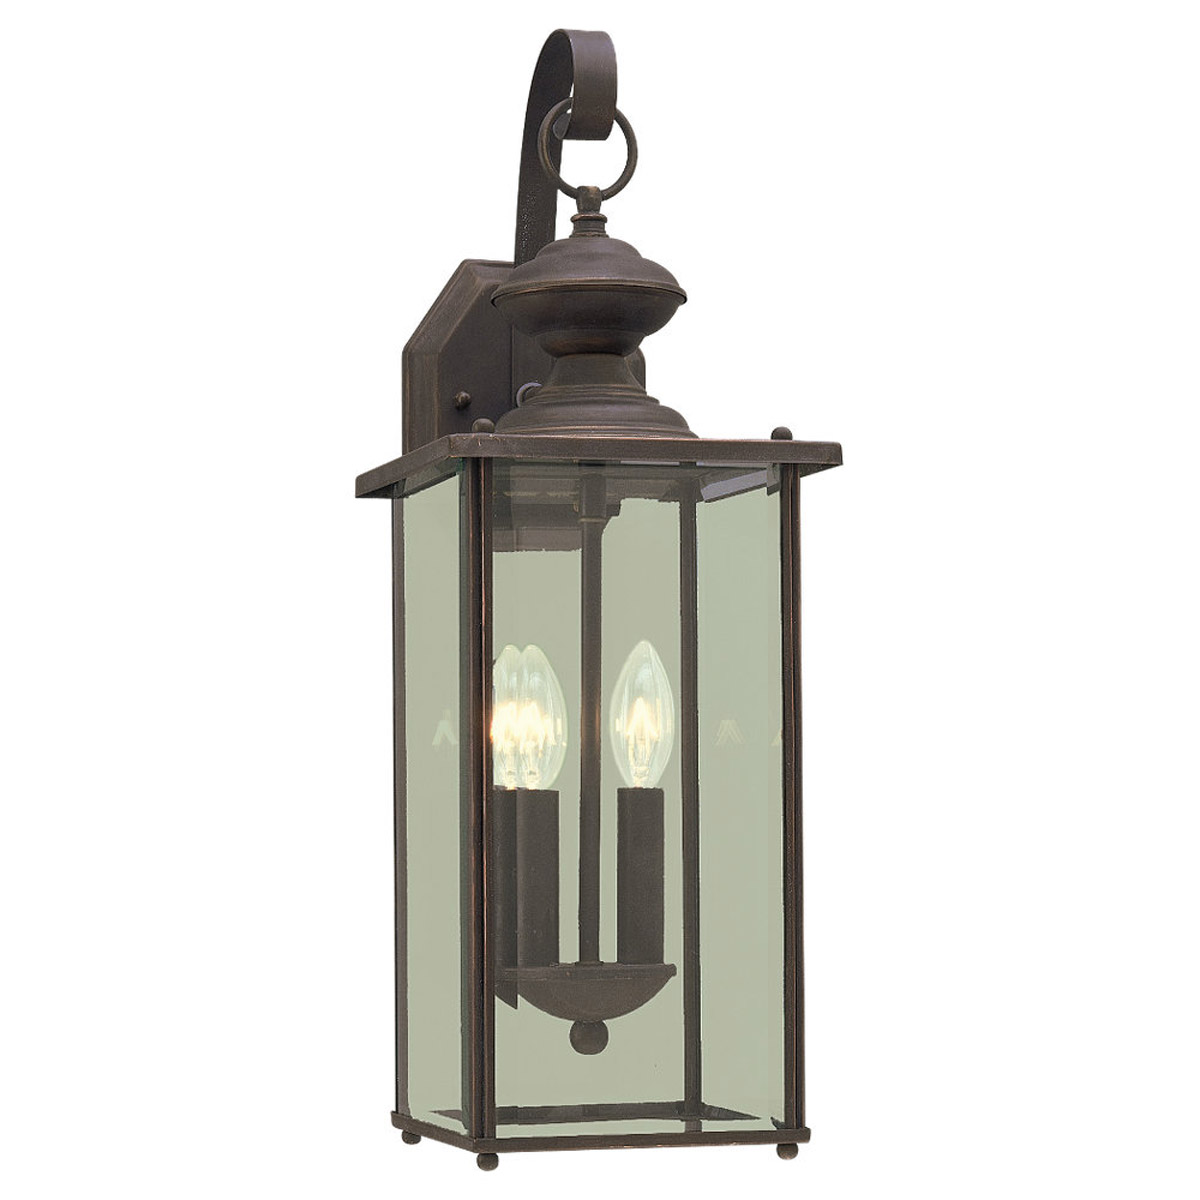 Sea Gull Lighting Jamestowne 2 Light Outdoor Wall Lantern in Antique Bronze 8468-71